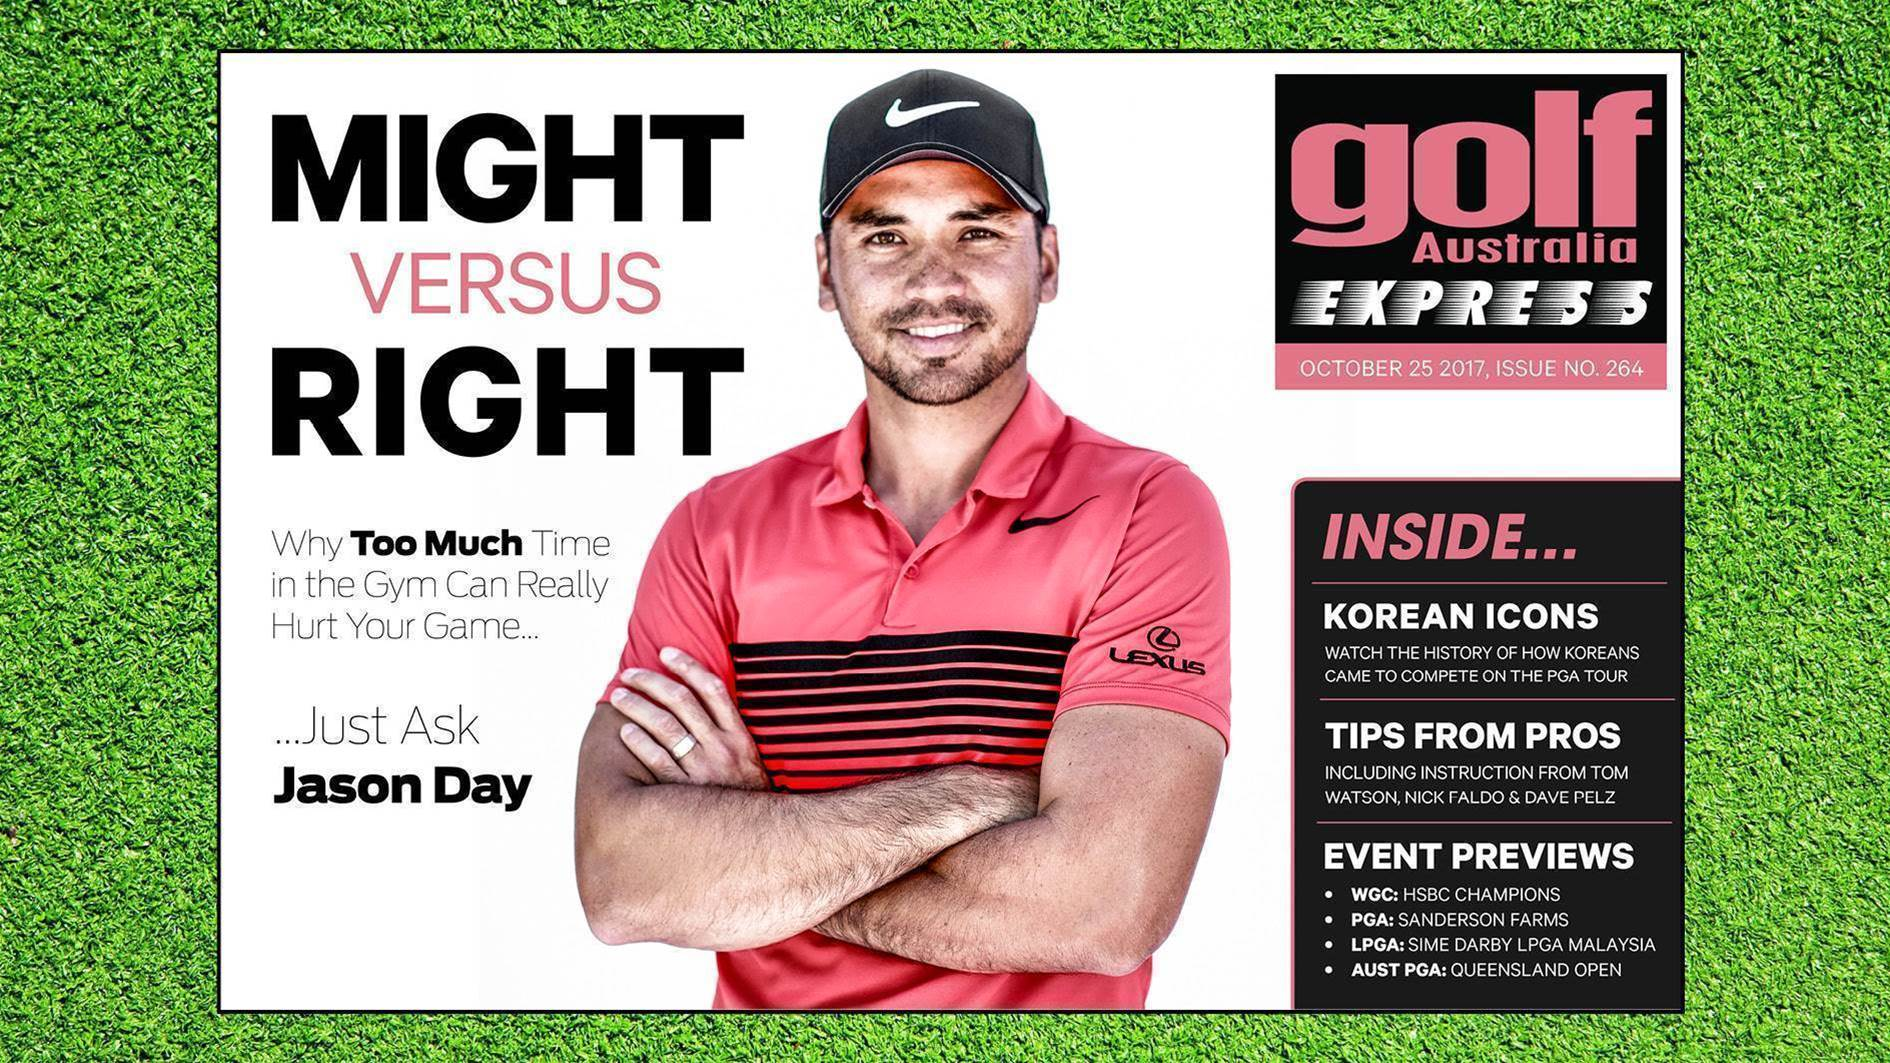 GA Express #264: Why pumping iron can hurt golf swings